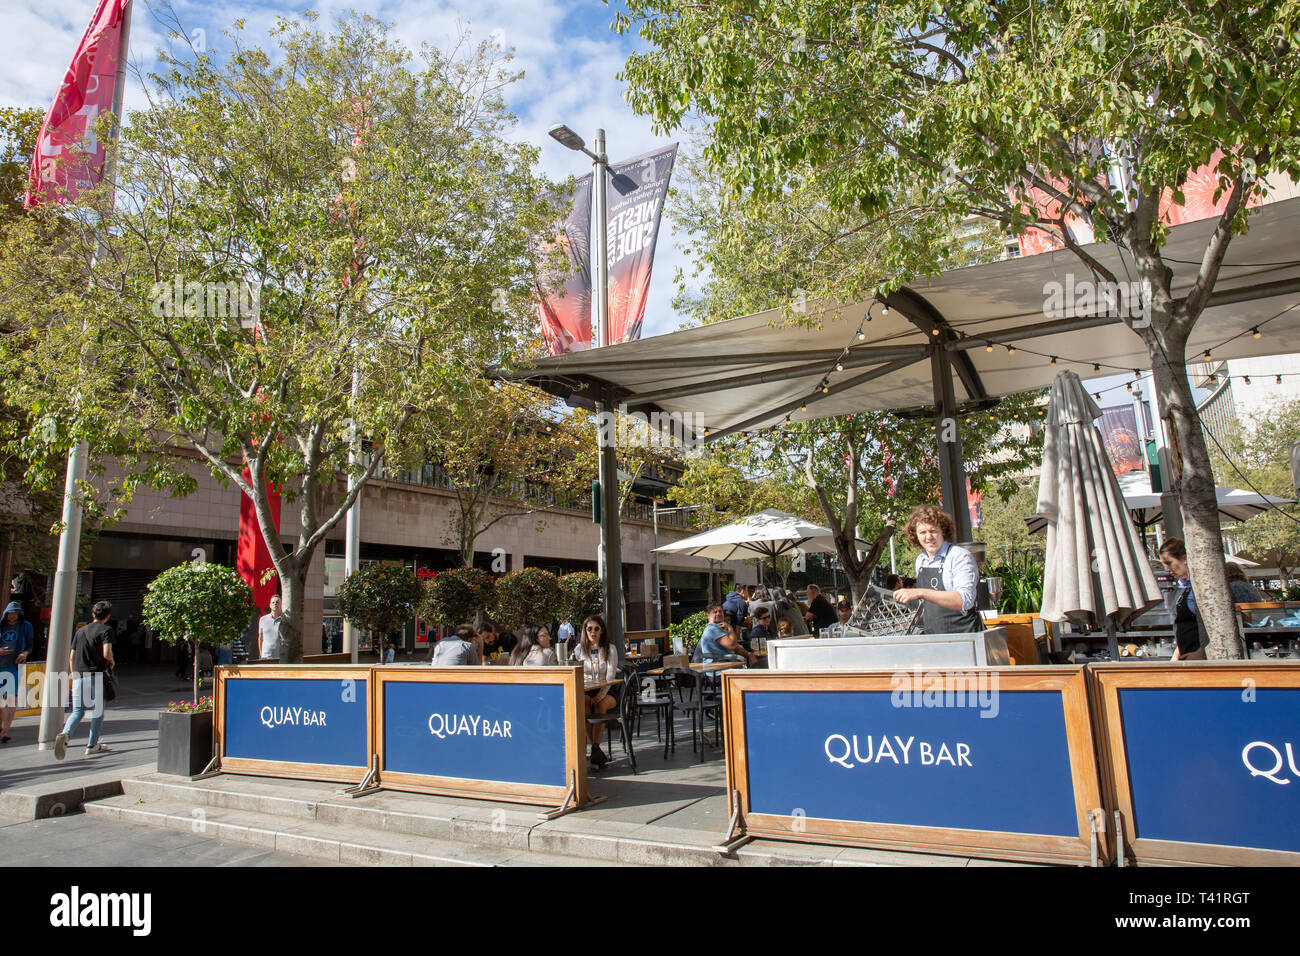 Quay bar at Circular Quay in Sydney popular with office workers for alfresco drinks and beer,Sydney,Australia - Stock Image